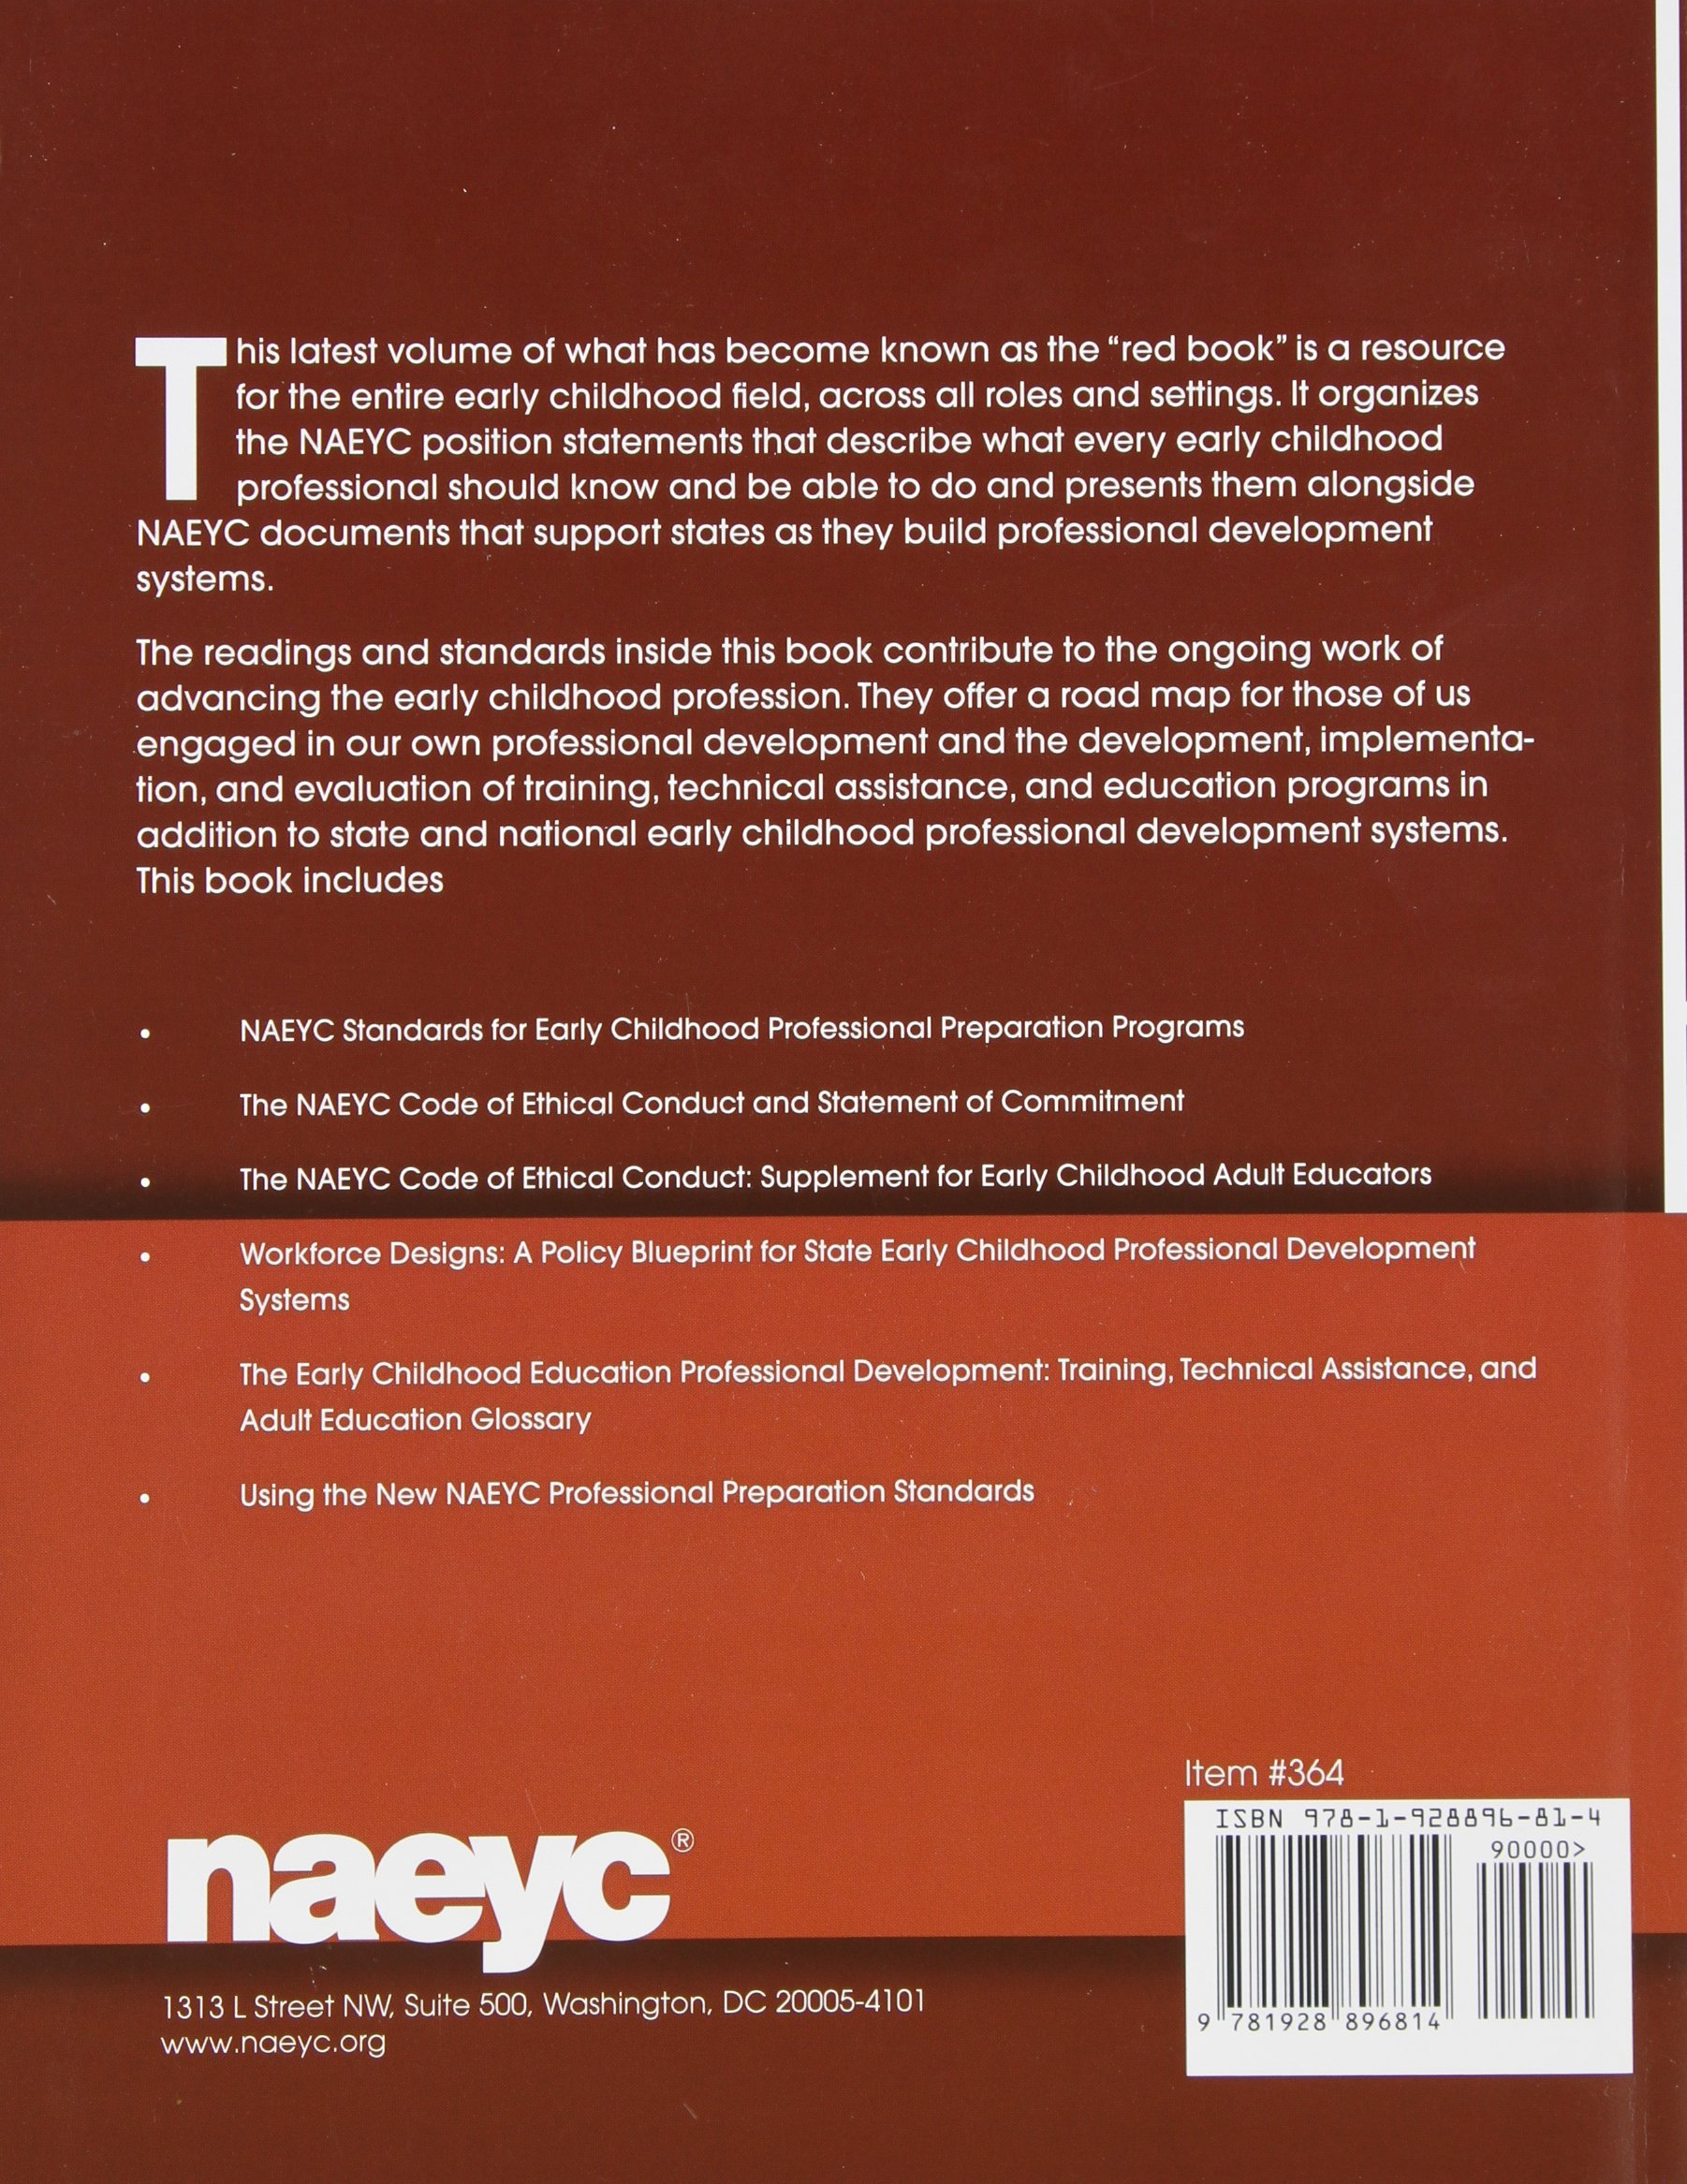 Advancing the early childhood profession naeyc standards and advancing the early childhood profession naeyc standards and guidelines for professional development alison lutton 9781928896814 amazon books malvernweather Gallery